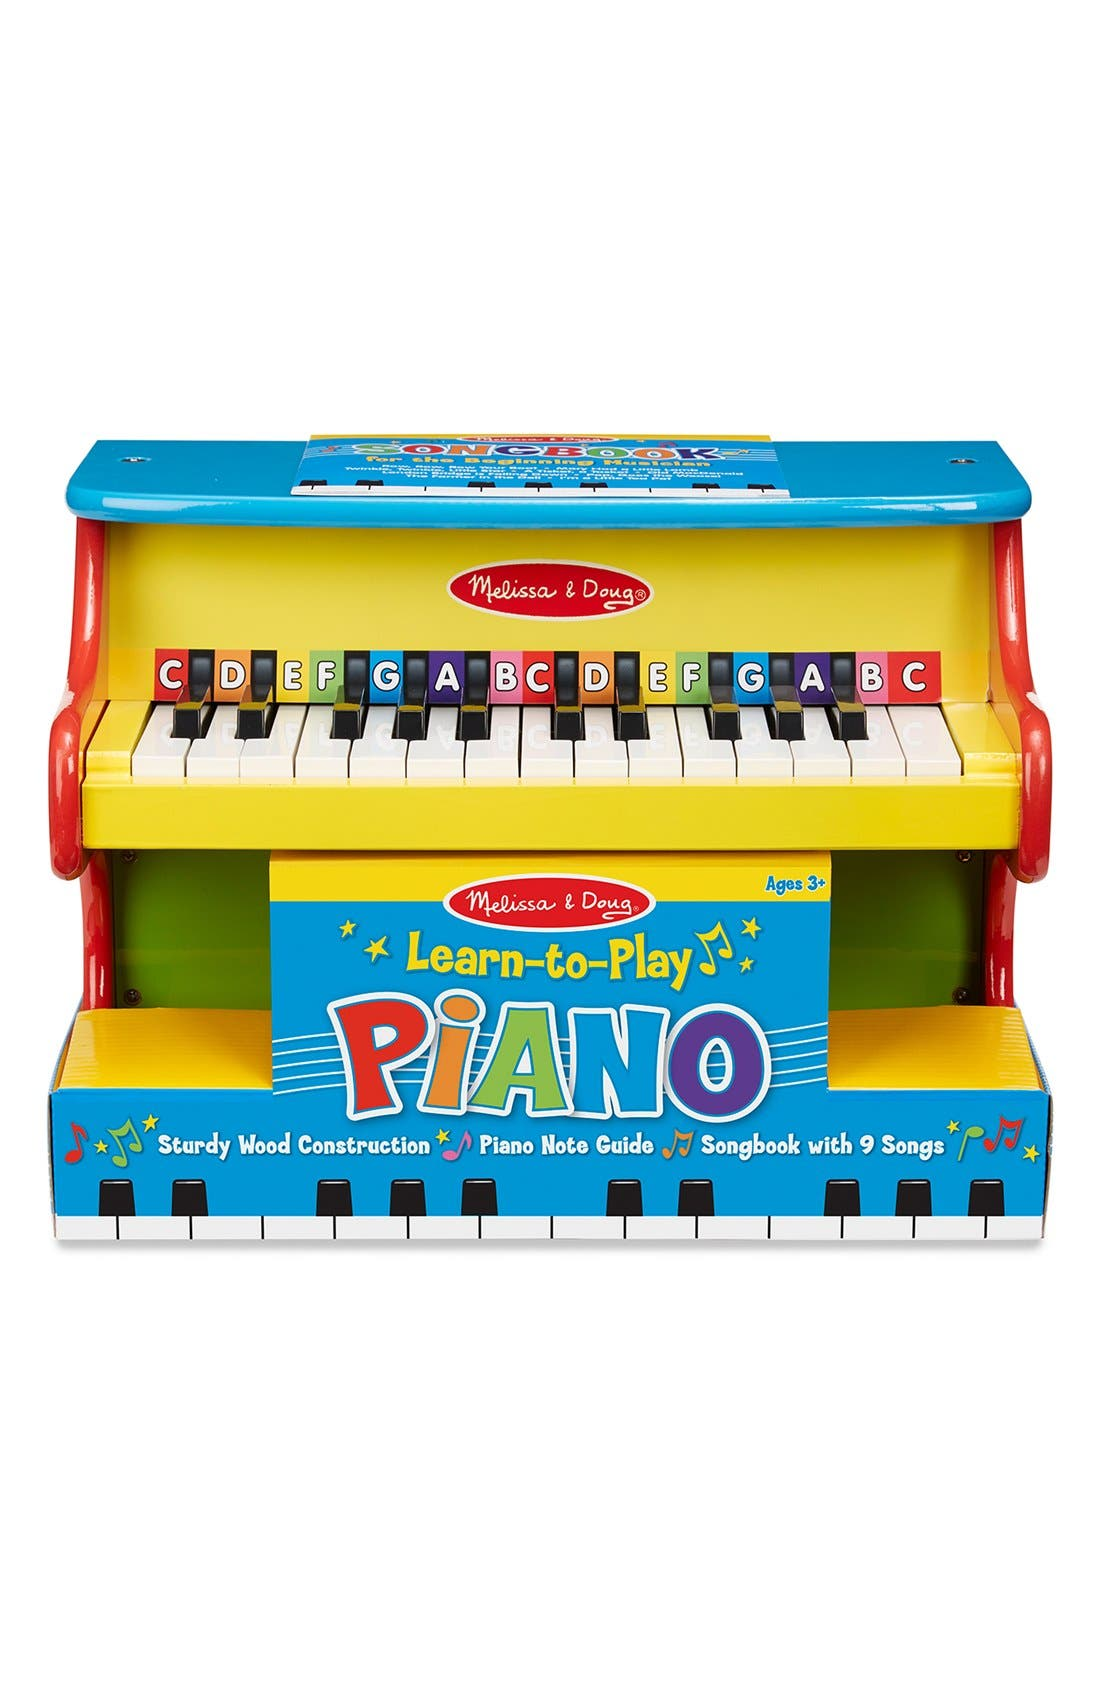 Alternate Image 1 Selected - Melissa & Doug 'Learn-to-Play' Piano